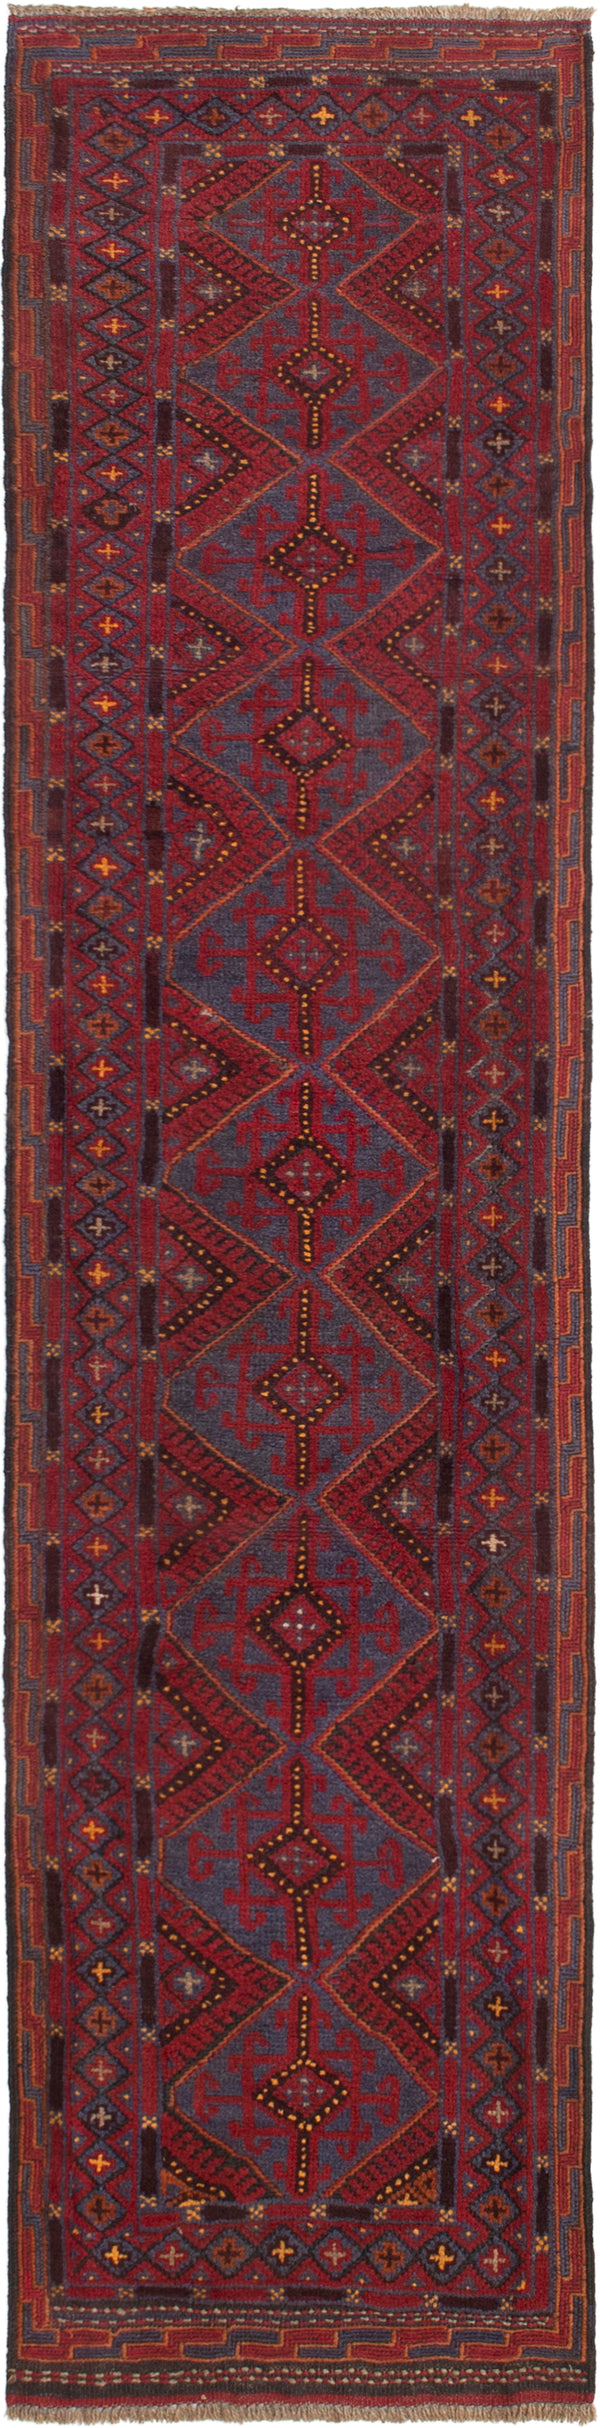 Hand-knotted Afghan Bordered  Tribal Tajik-Caucasian Runner rug  Dark Red 2.1 x 9.4